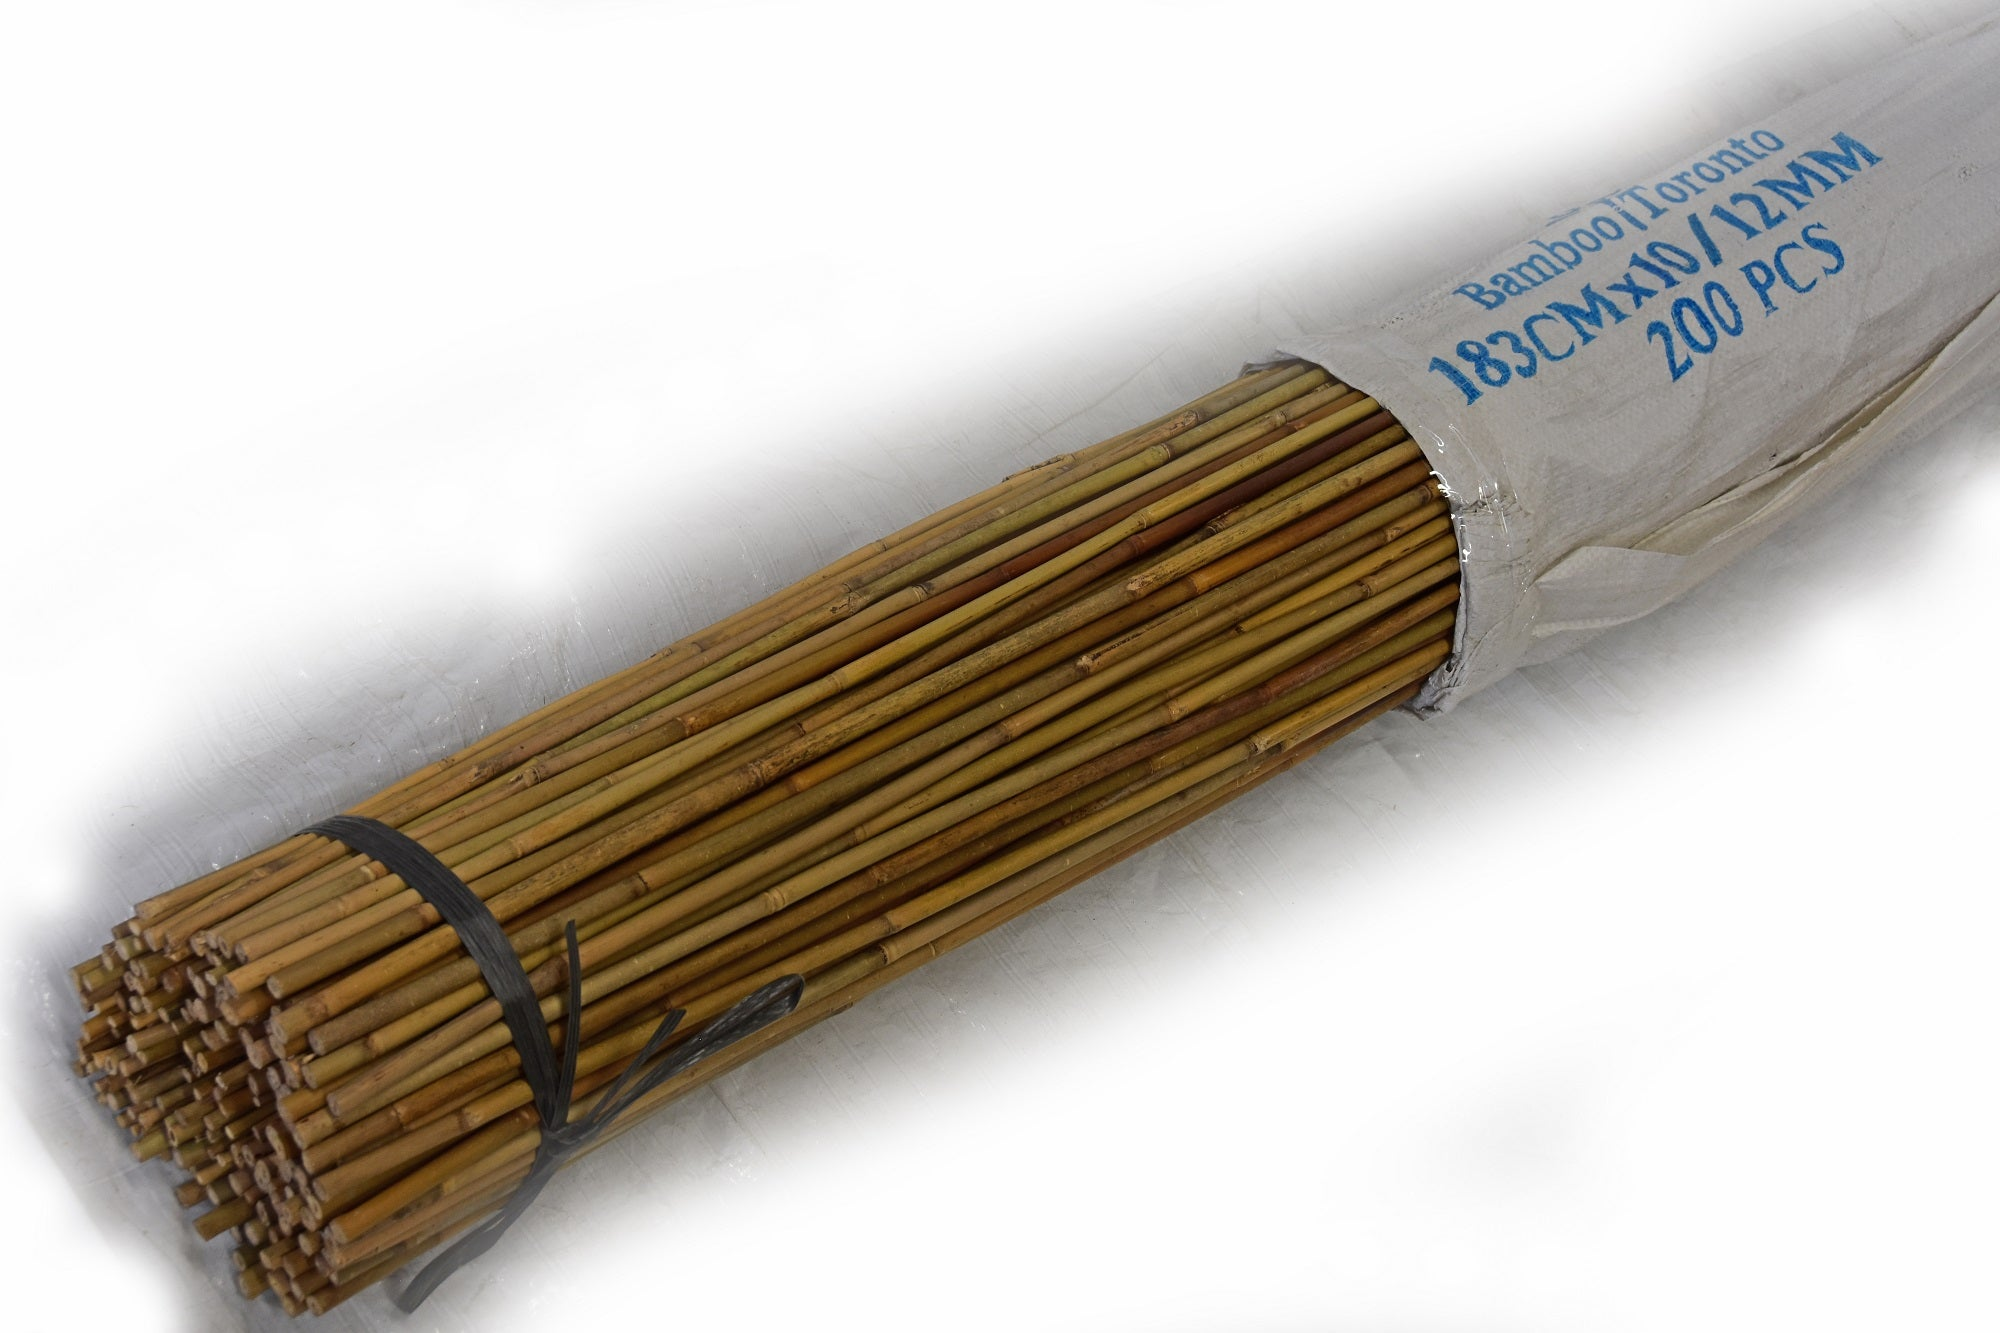 Tonkin Bamboo Pole 10-12mm x 6' Bundle of 200 - Bamboo Toronto Store